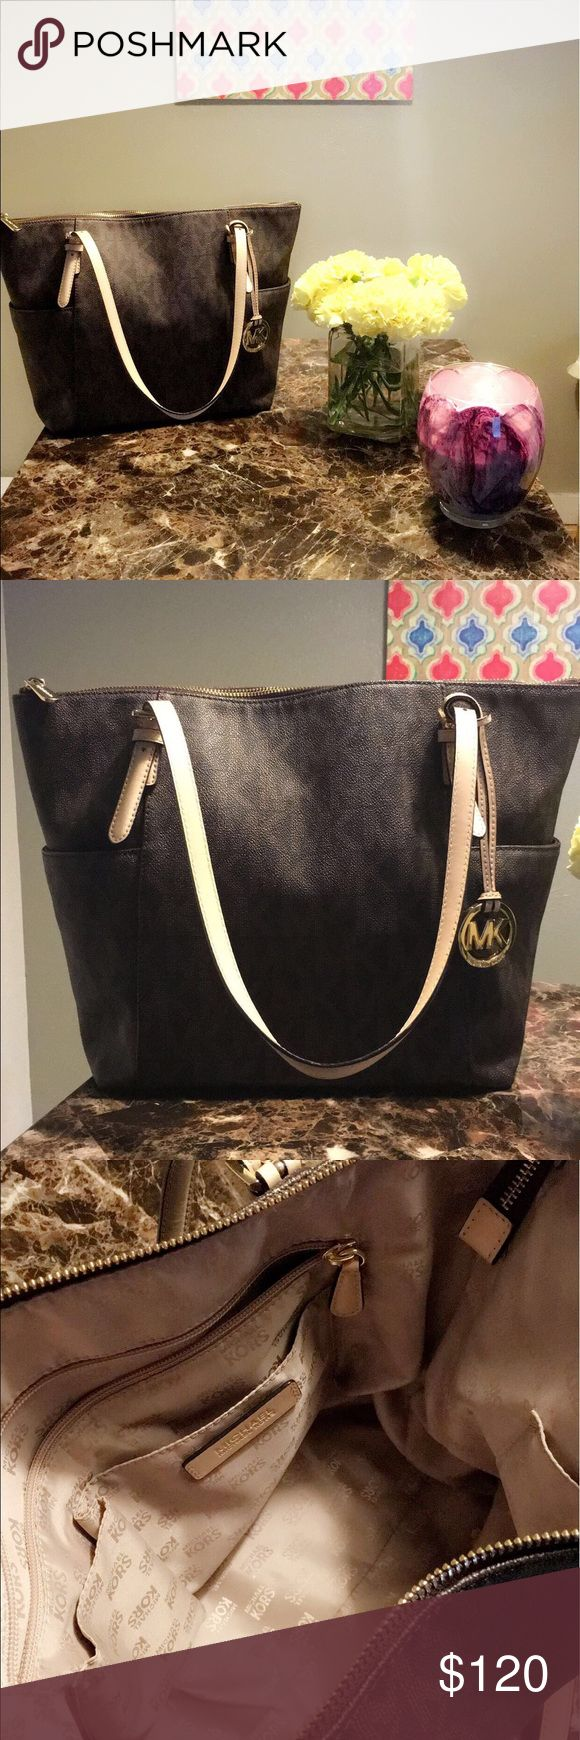 Michael Kors Jet Set Logo Tote Gently used, authentic, Michael Kors Jet Set Logo Tote Michael Kors Bags Totes